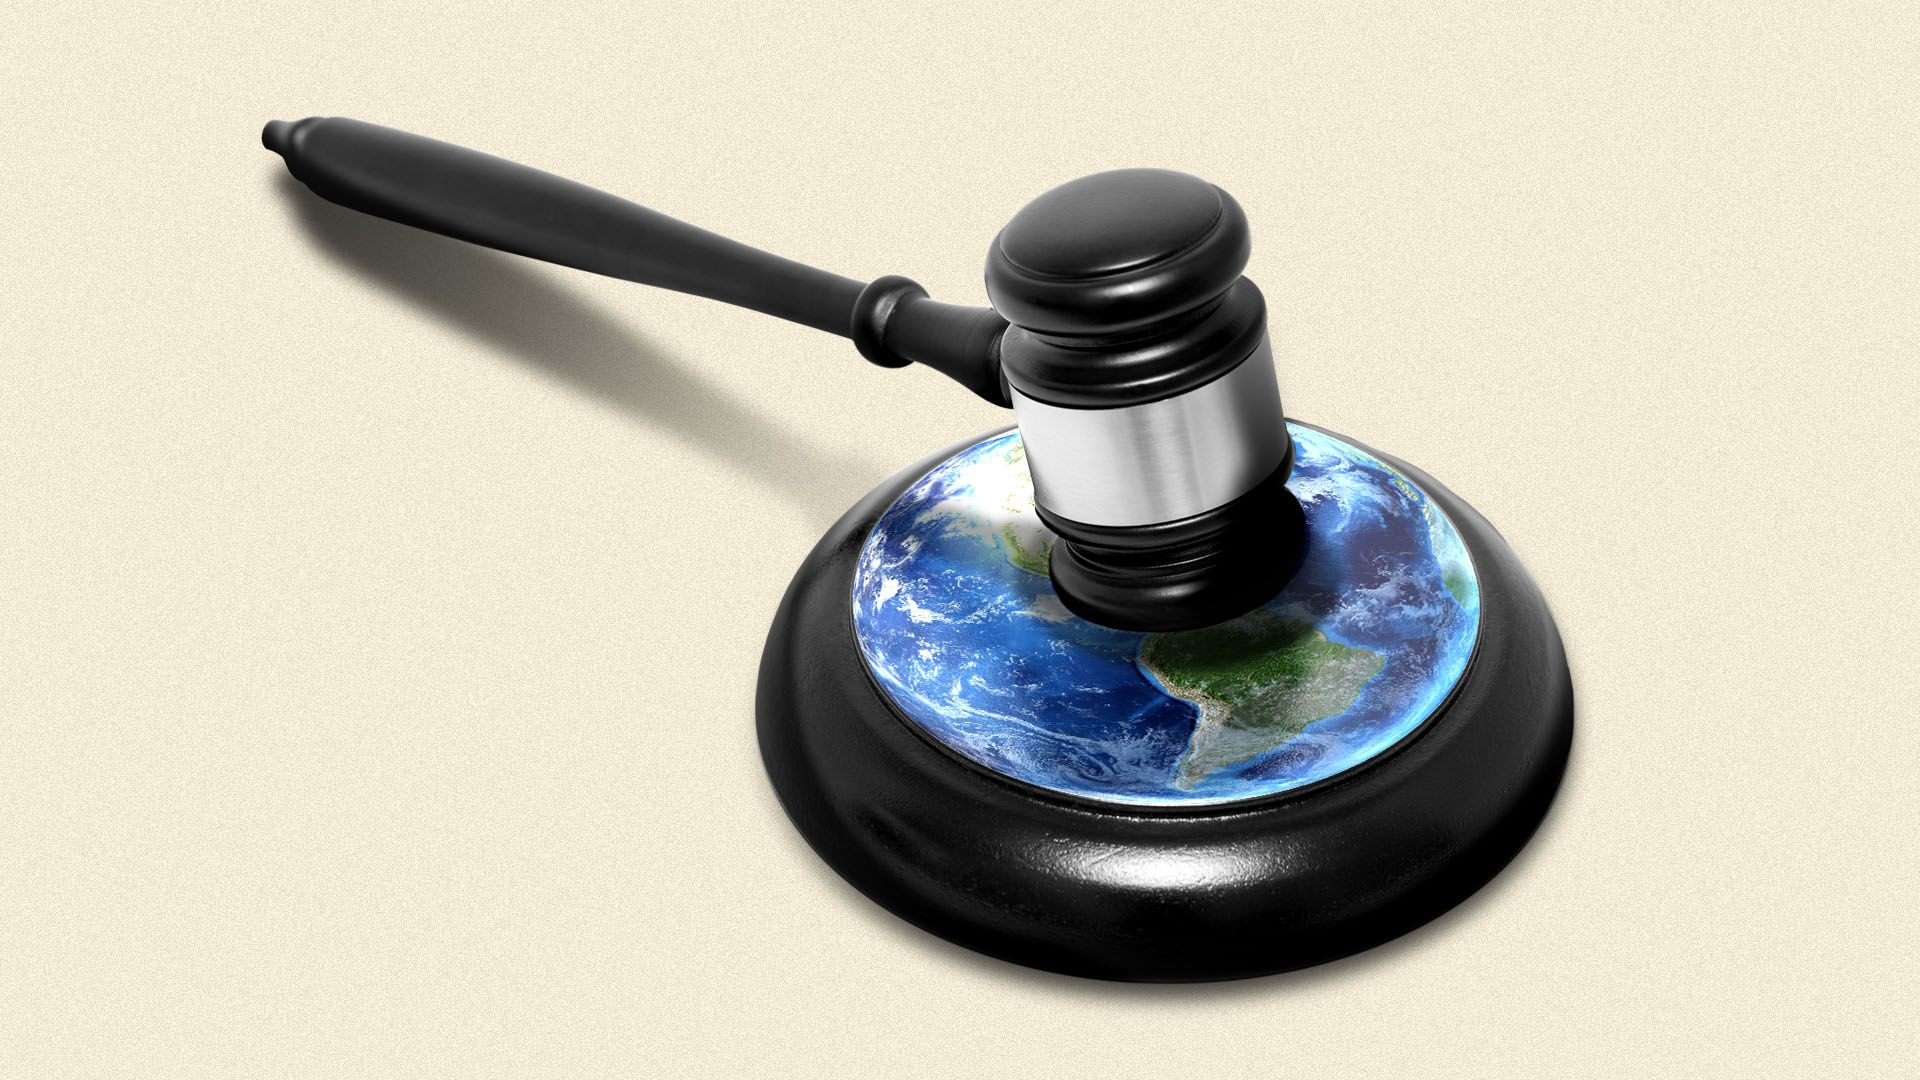 Illustration of a gavel and sound block with an image of the earth on it.